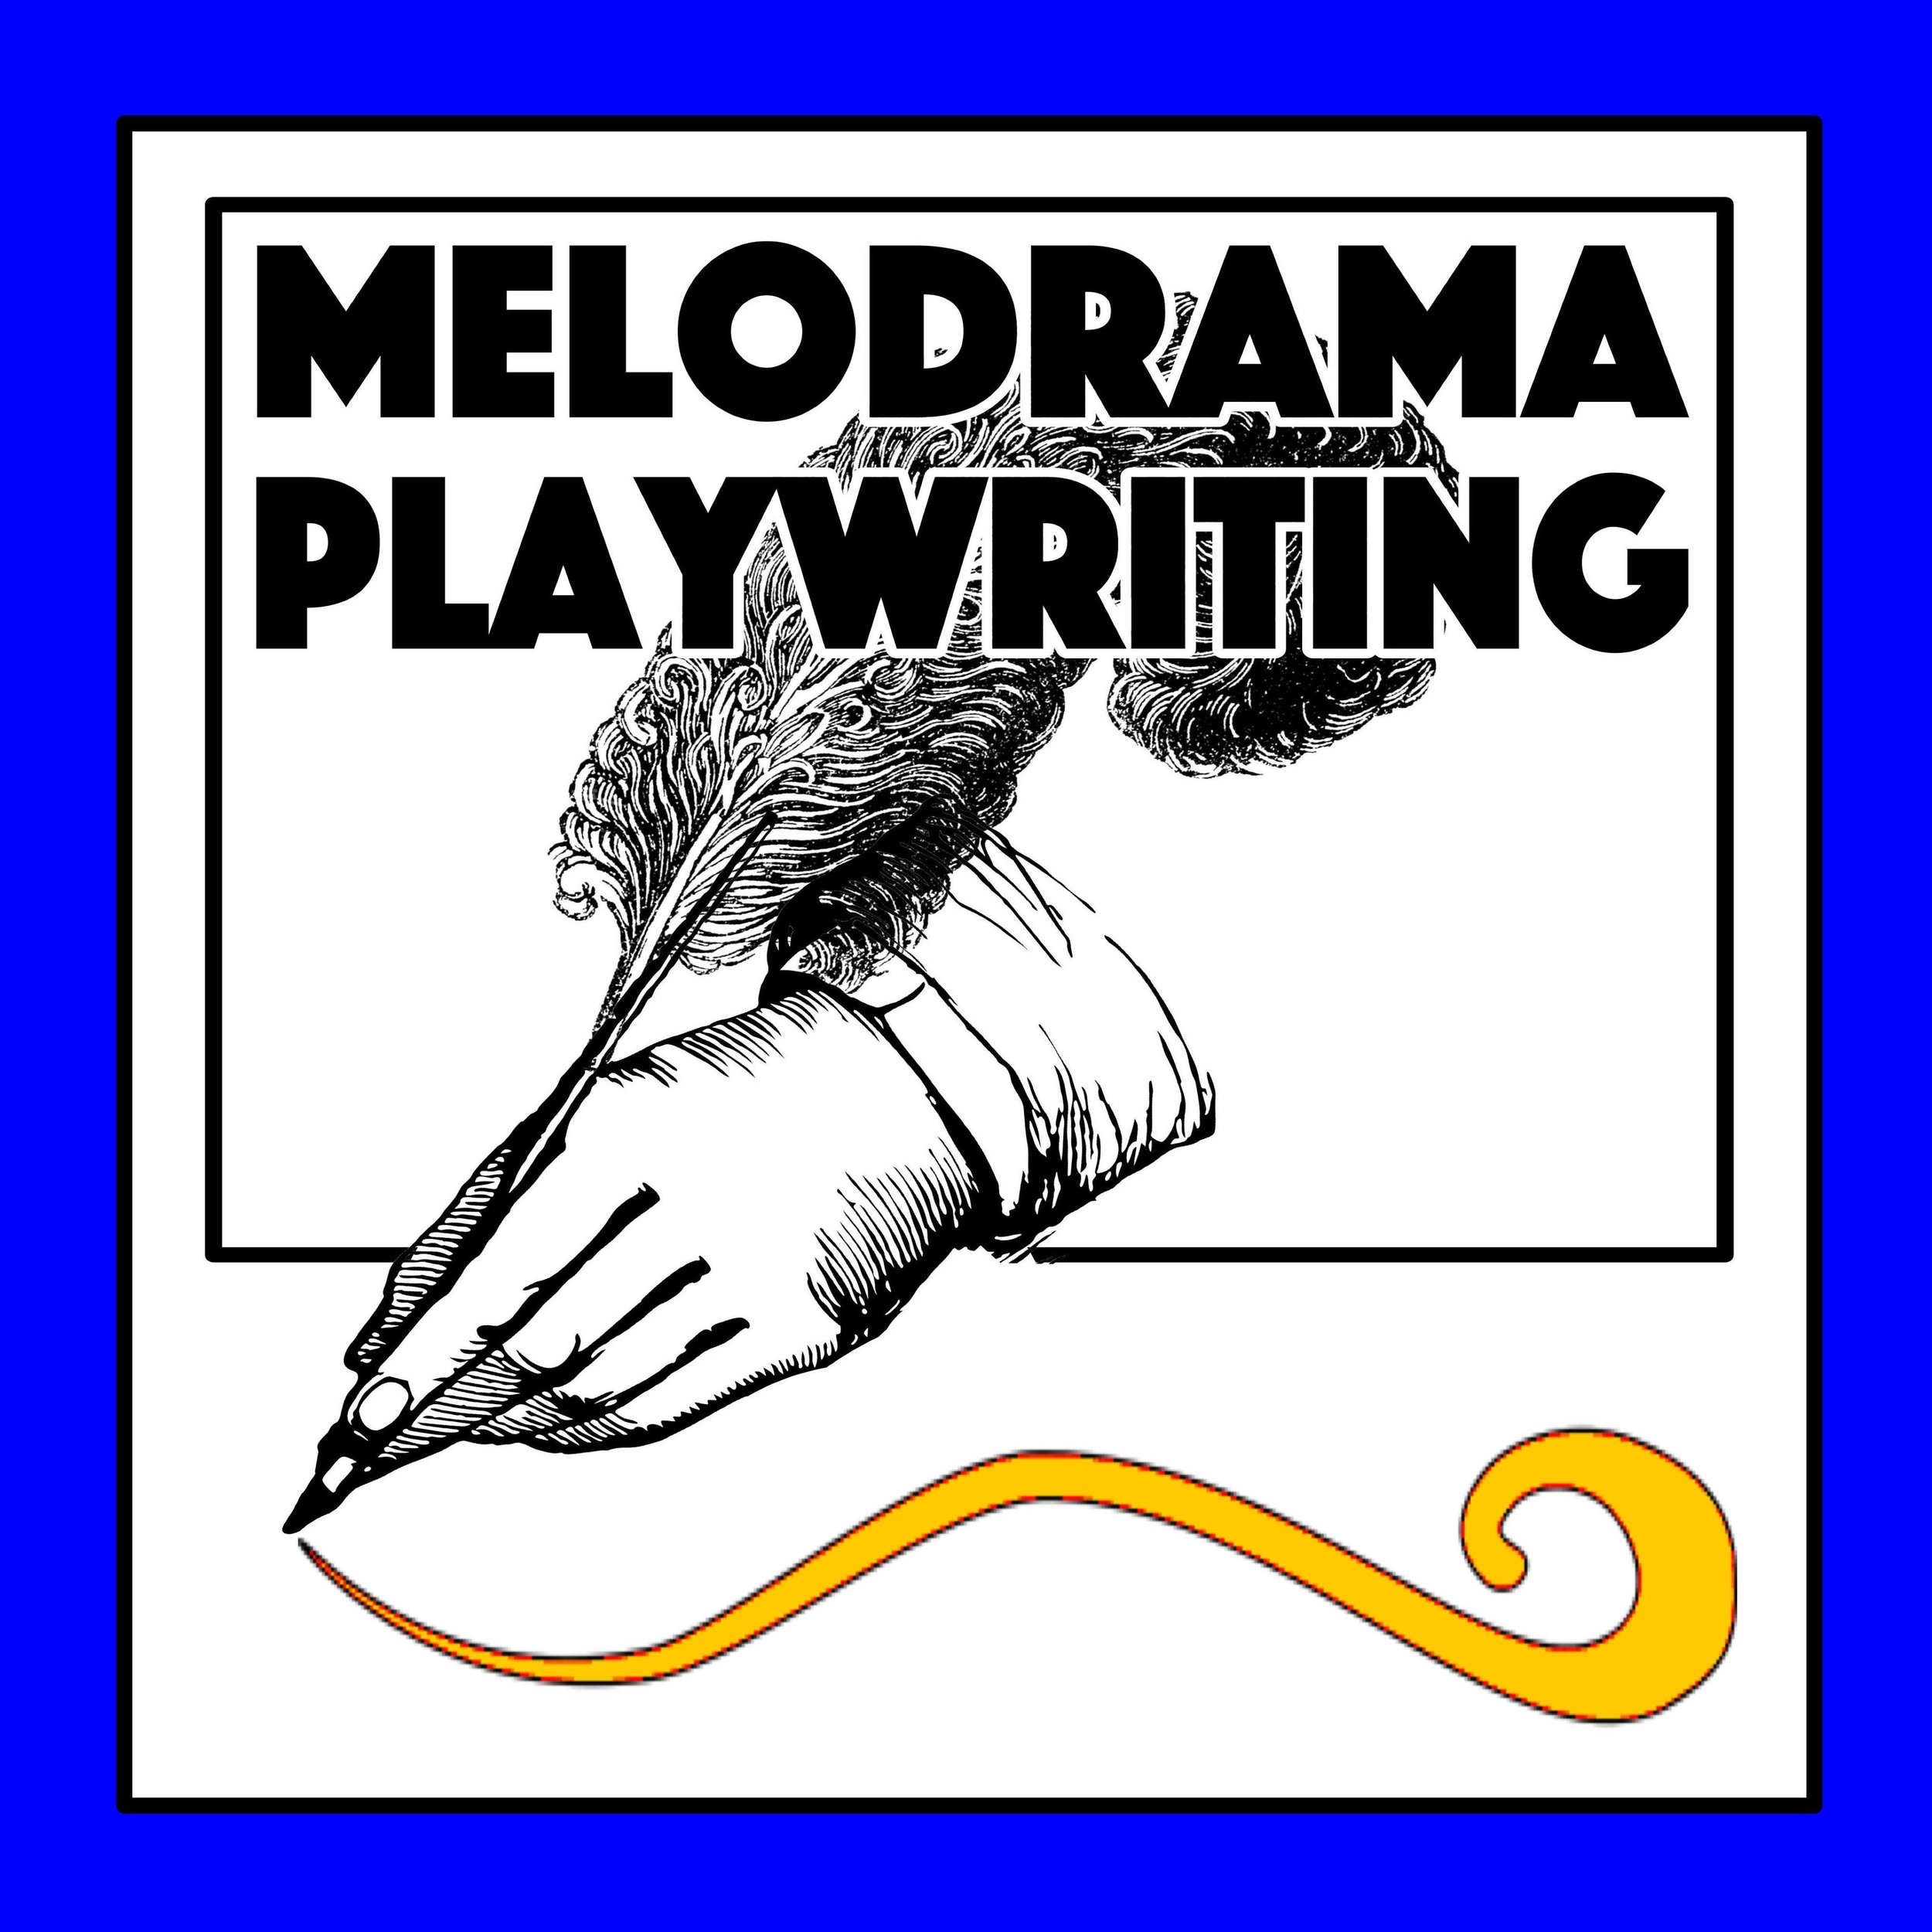 Melodrama Playwriting - With Hayden BunkerAGES 11 AND UP